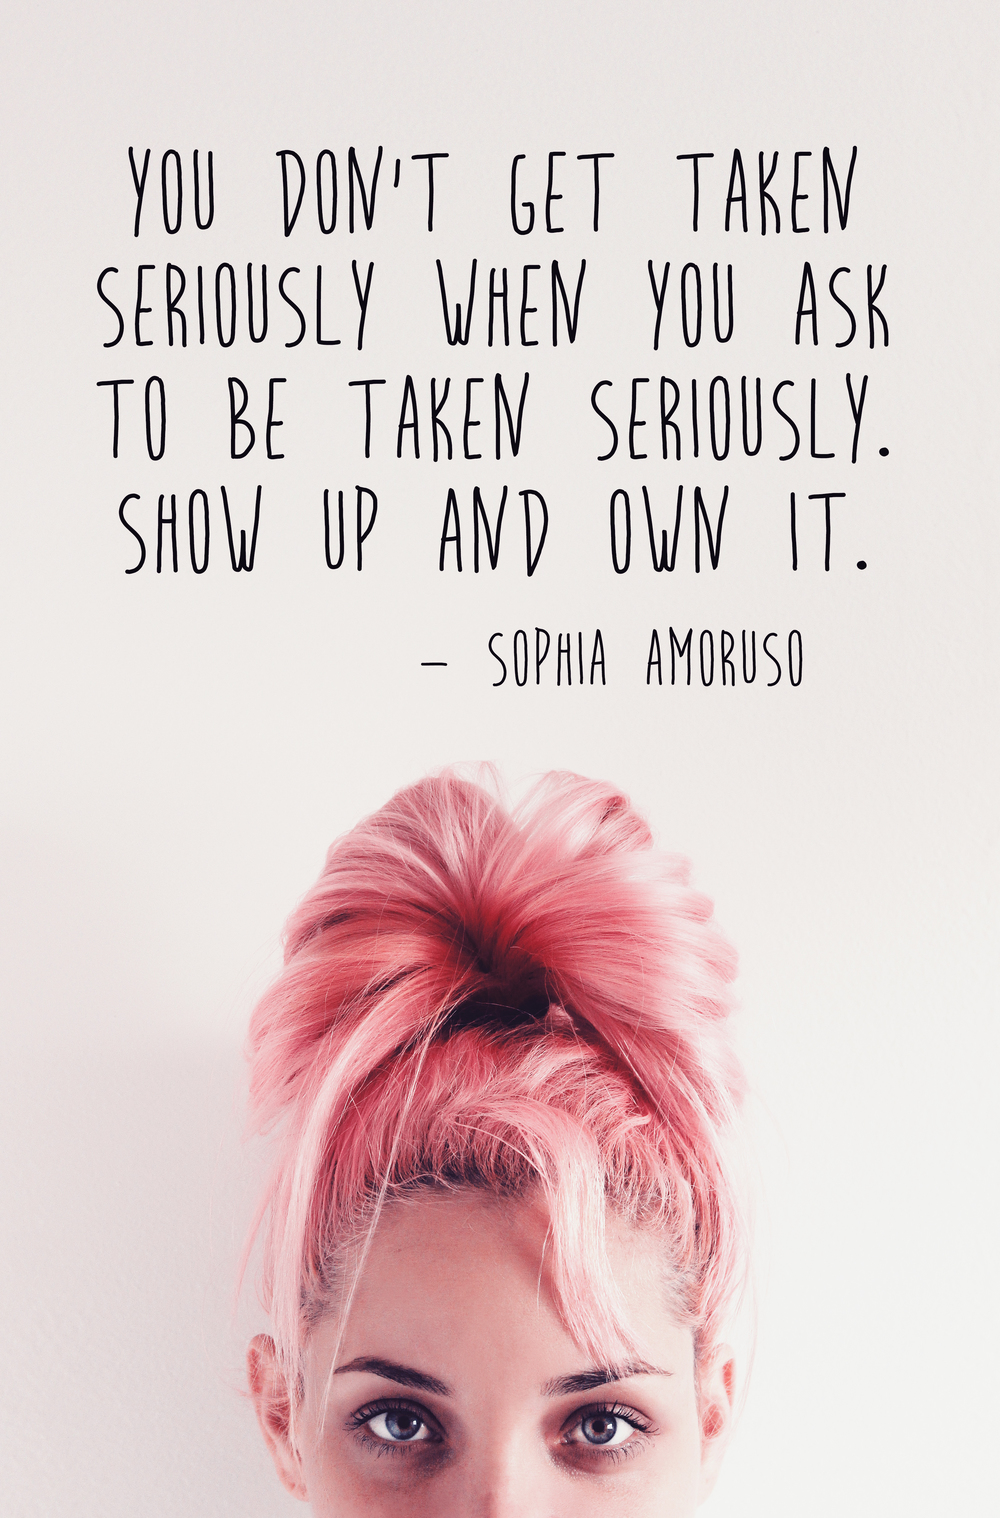 Show up and own it. People will take you seriously when you take yourself seriously, Sophia Amoruso quote